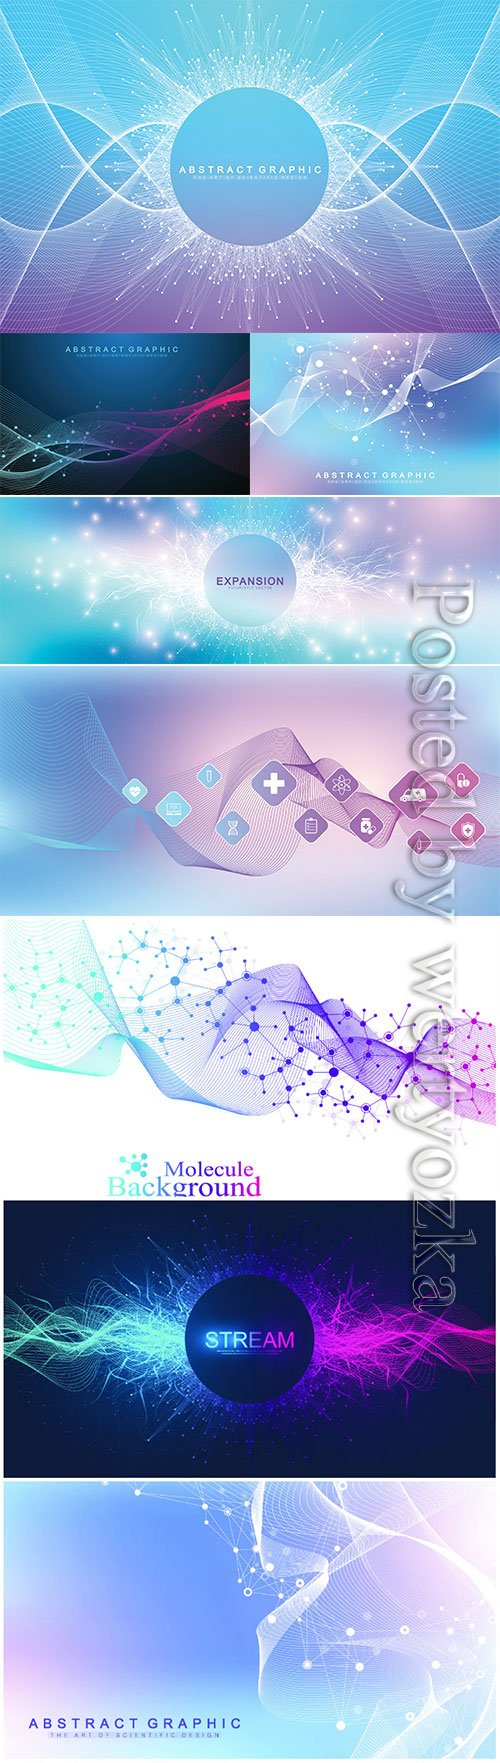 Abstract dynamic motion background with colorful particles,